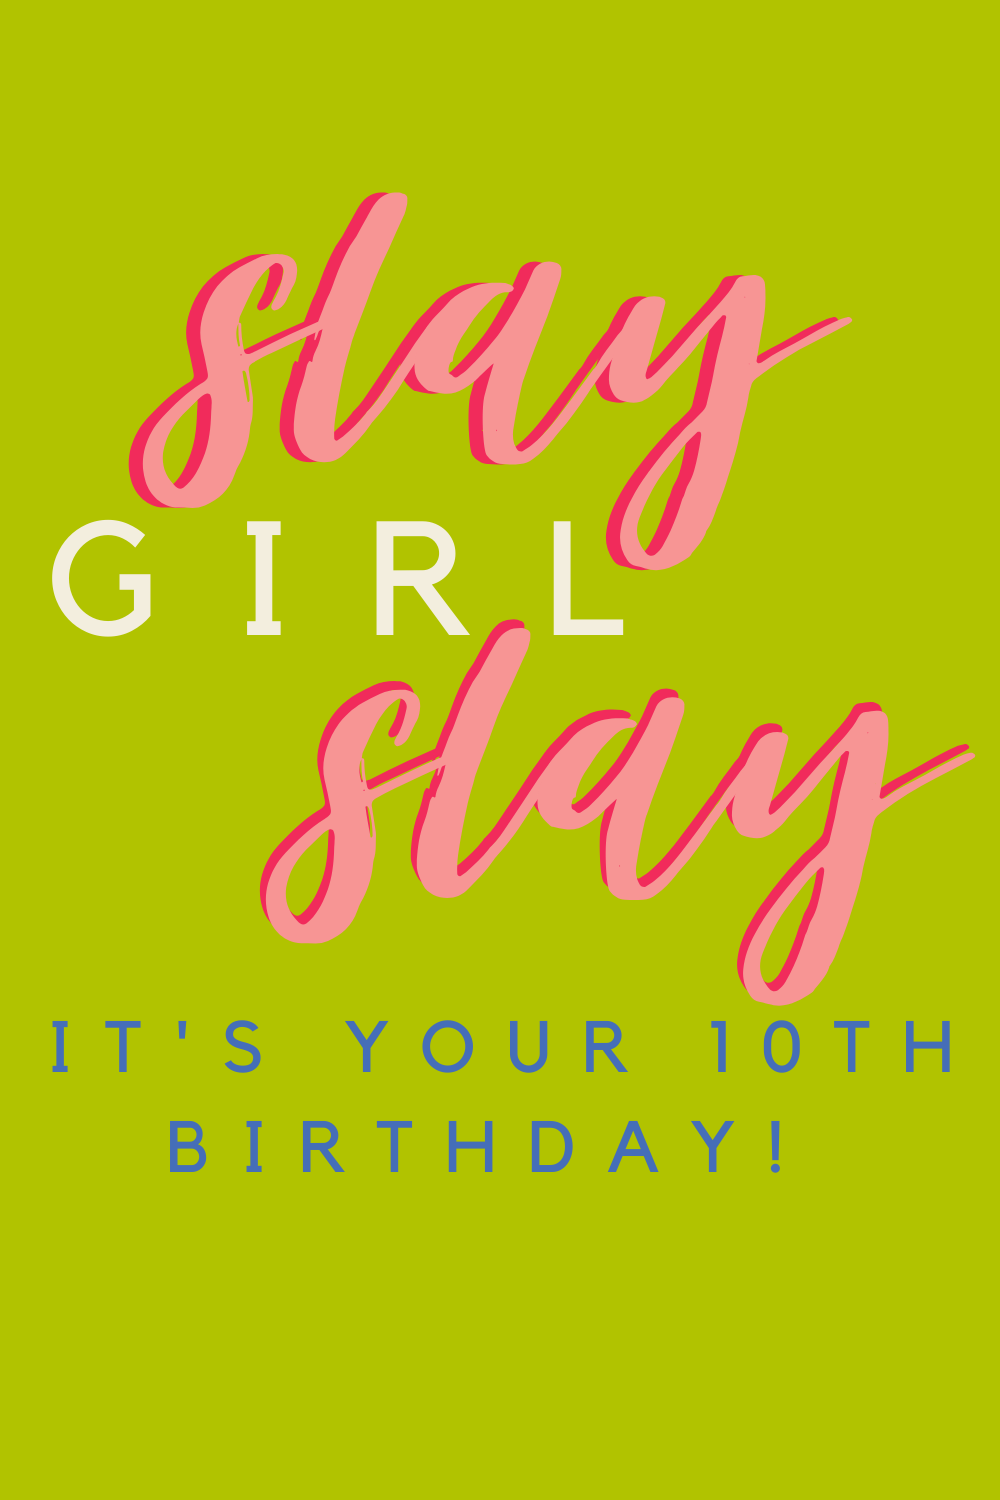 Slay girl Slay quotes for 10th birthday